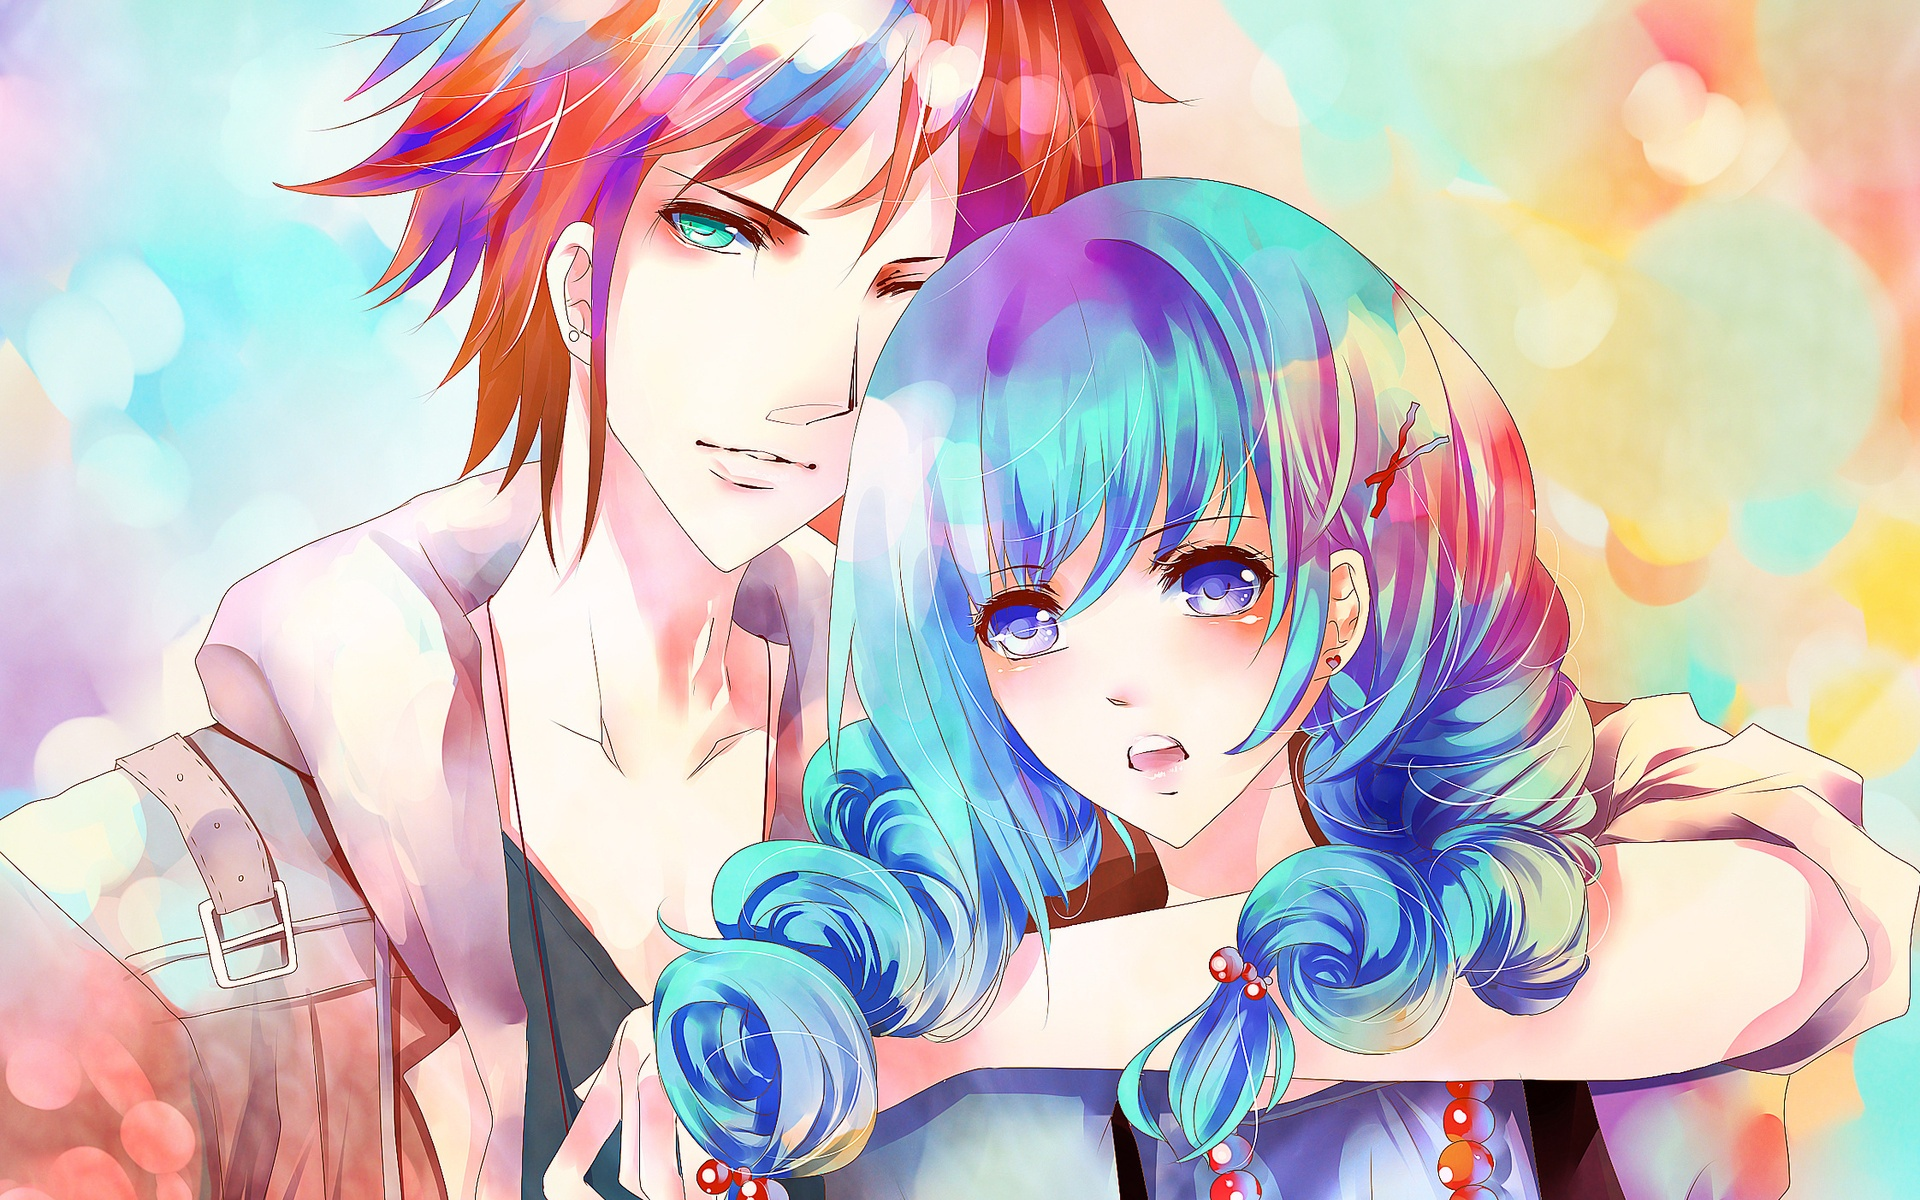 Wallpaper Blue Hair Anime Girl With A Boy 1920x1200 Hd Picture Image